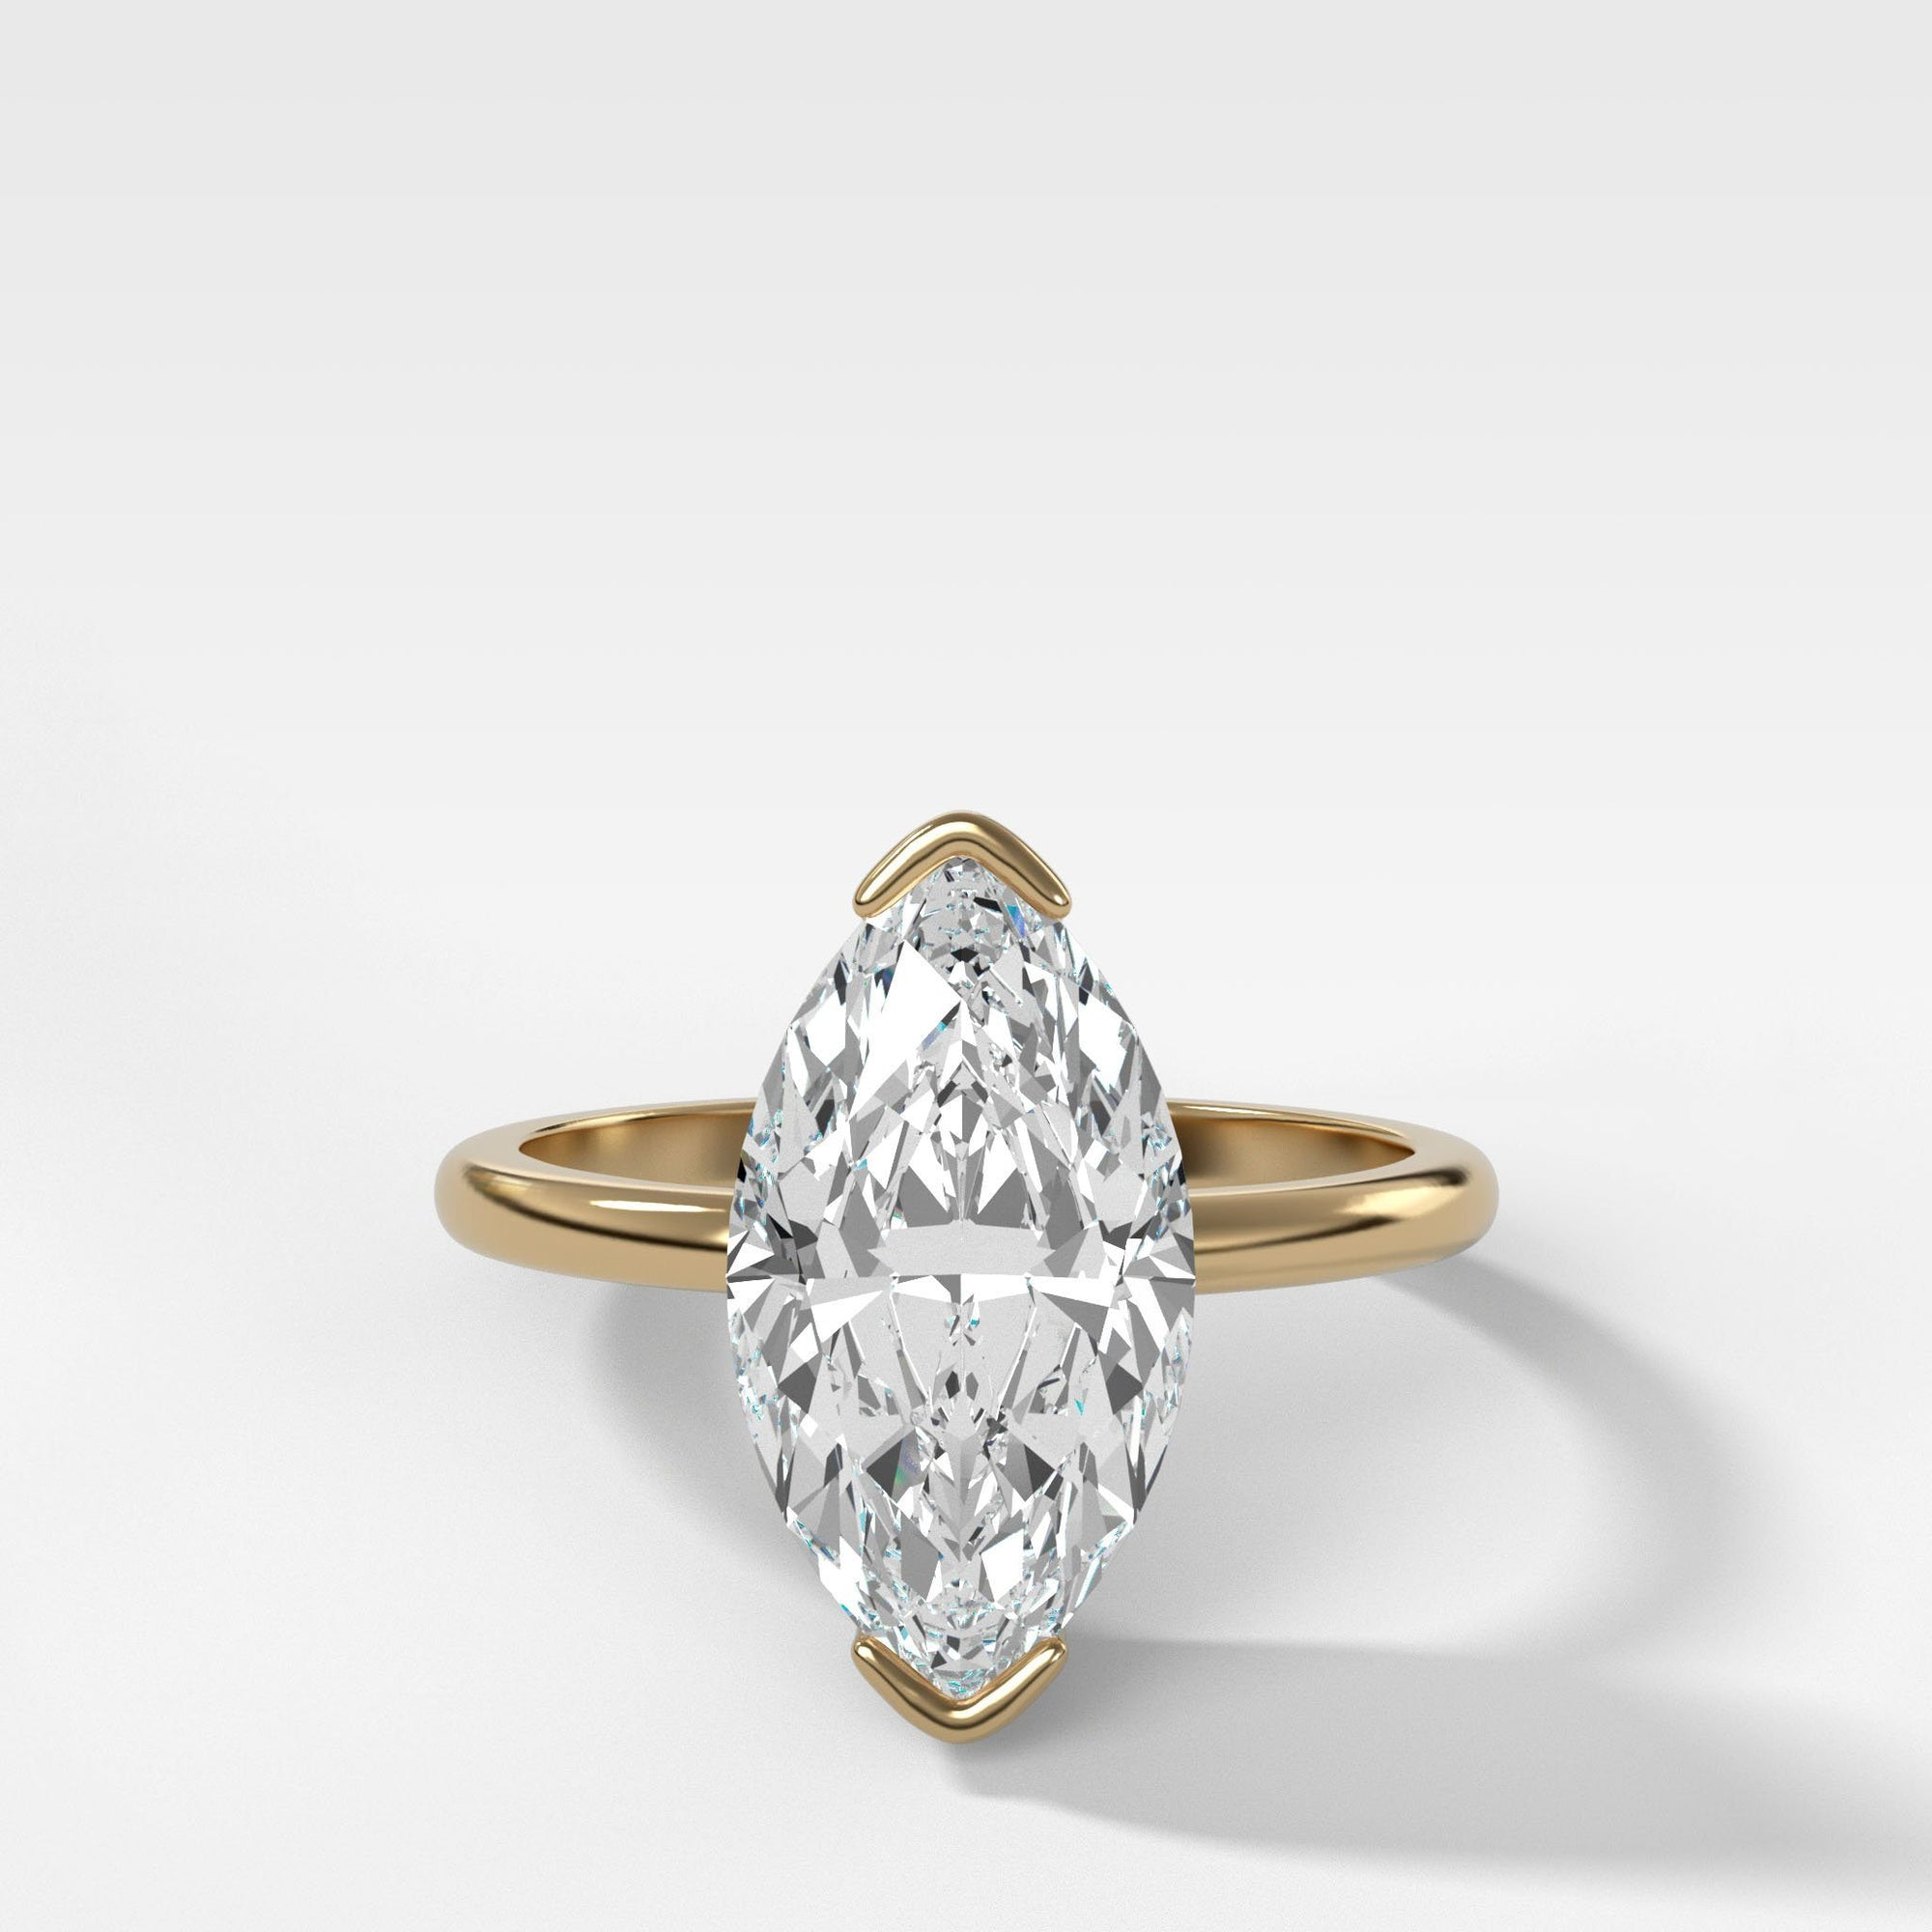 Half Bezel Solitaire Engagement Ring With Marquise Cut (North South) in Yellow Gold by Good Stone